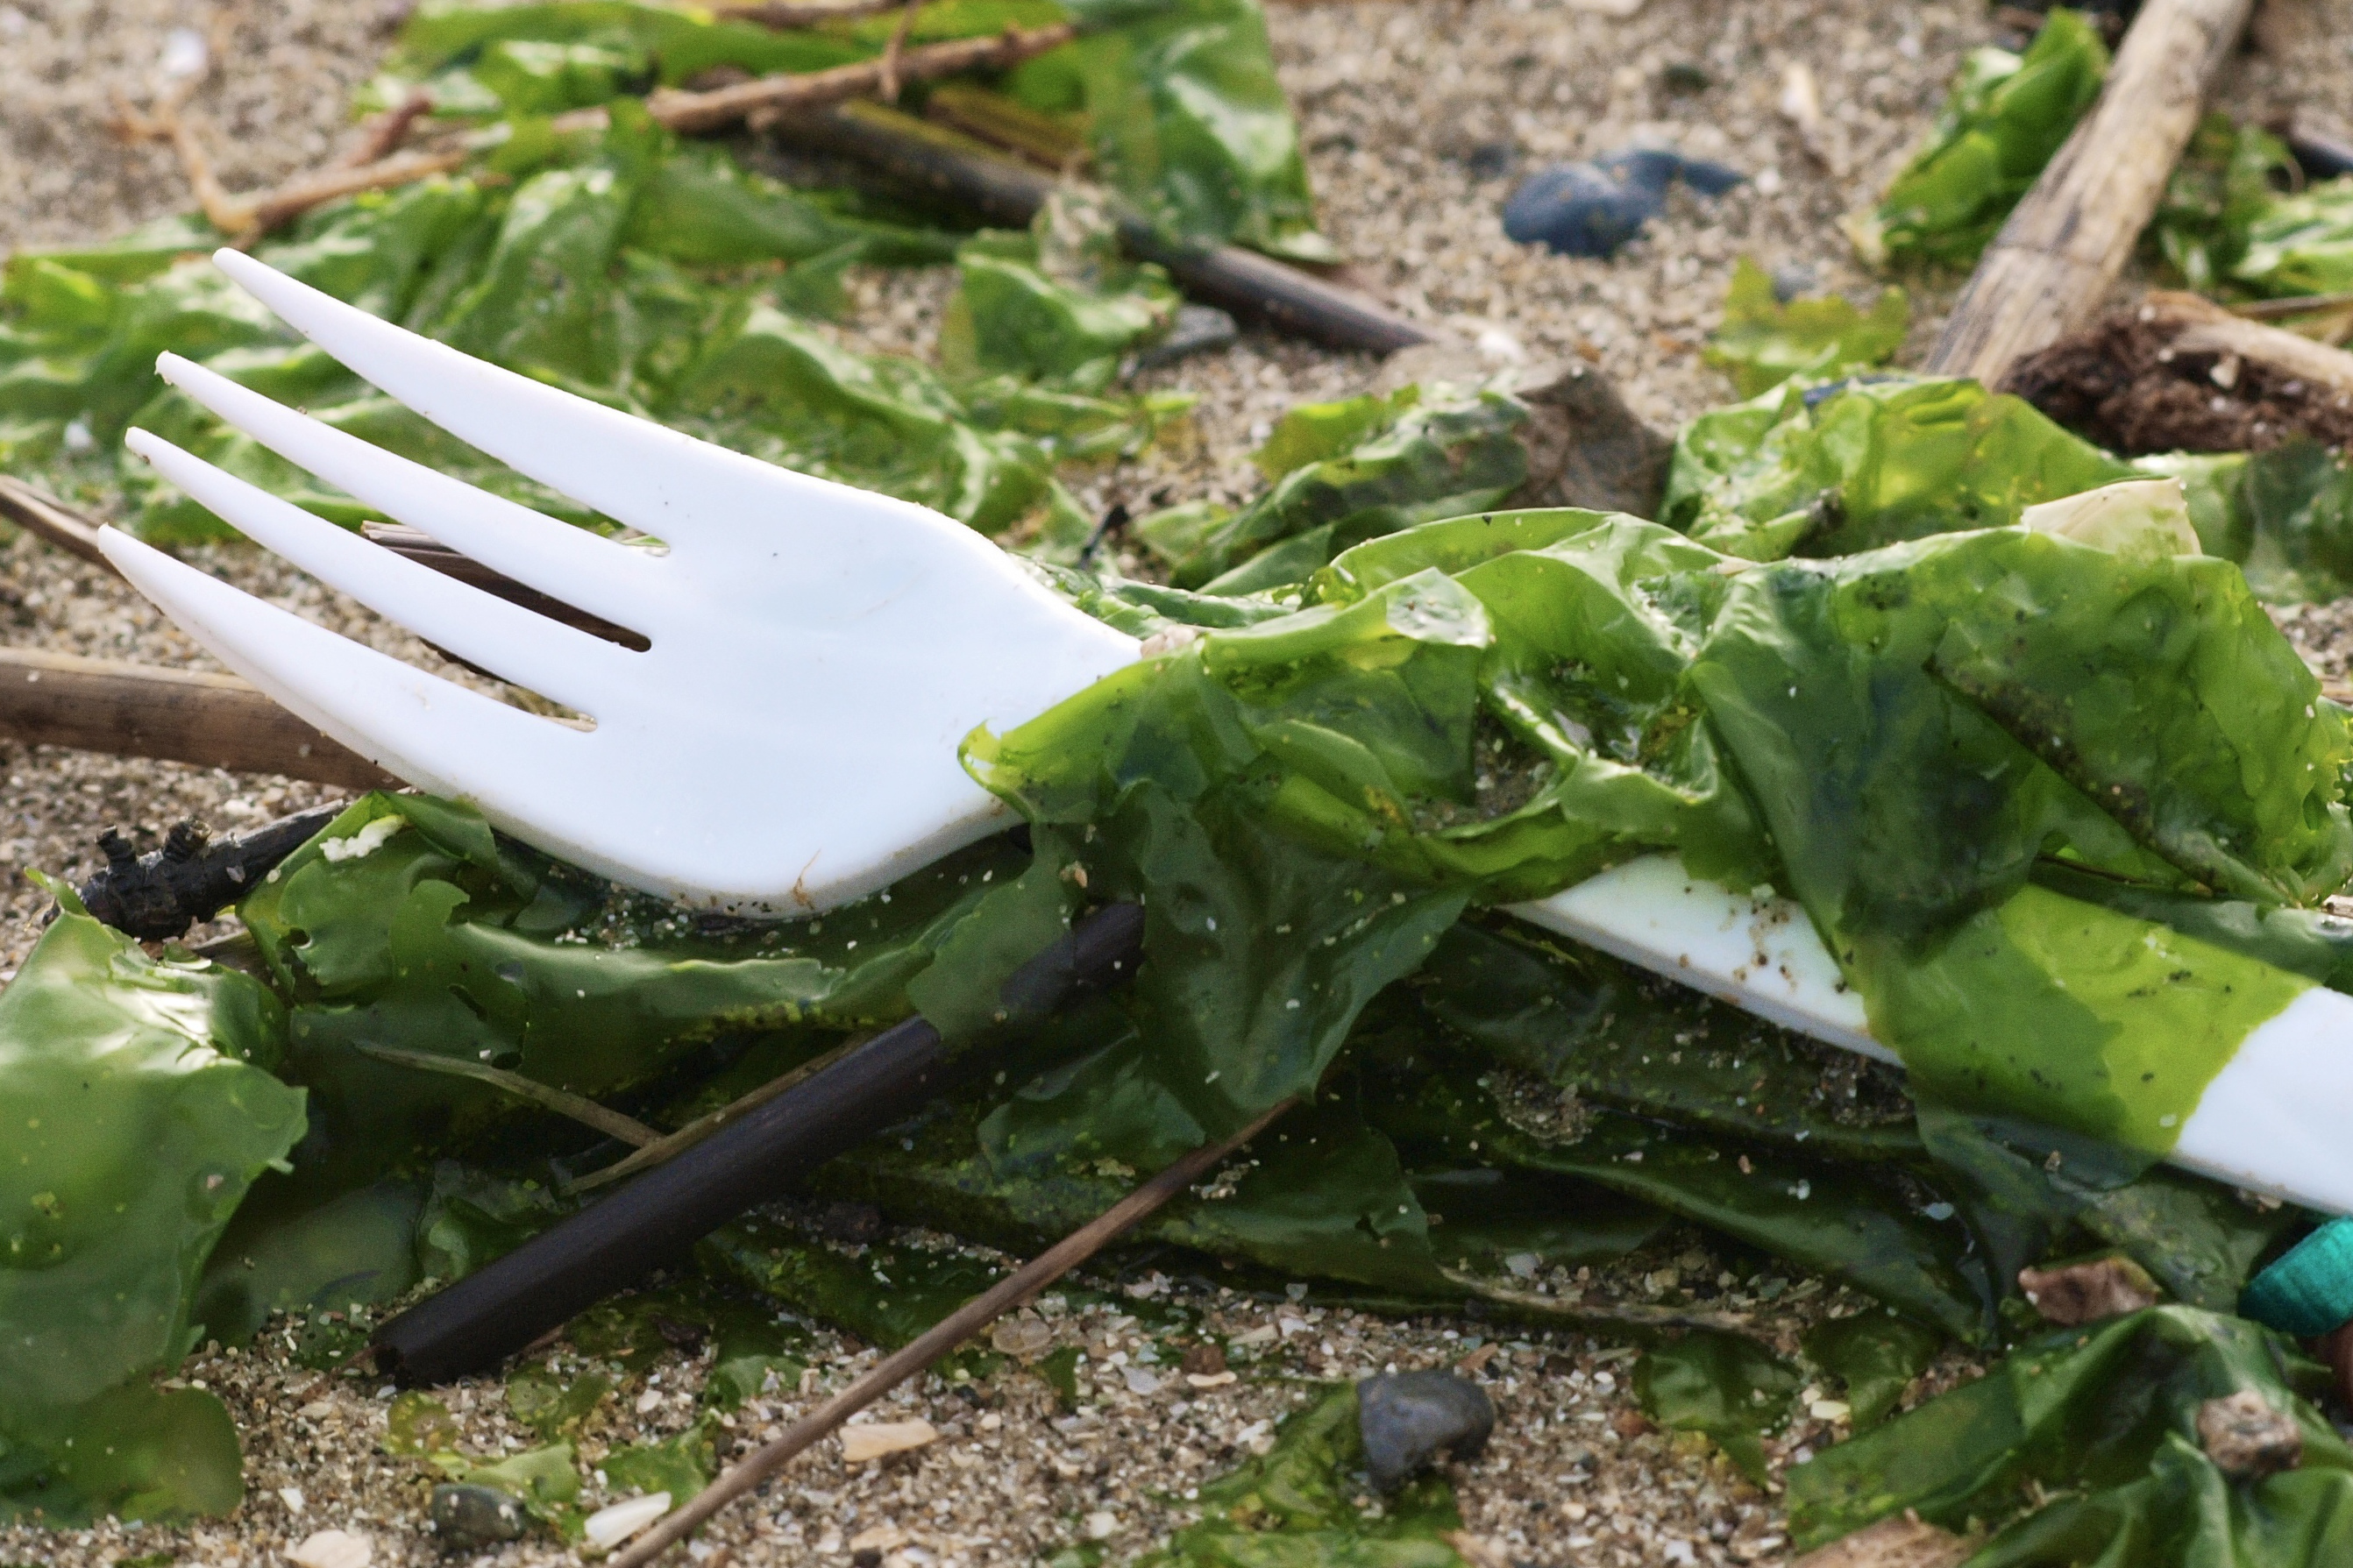 A plastic fork mingles with sand and seaweed on a beach.